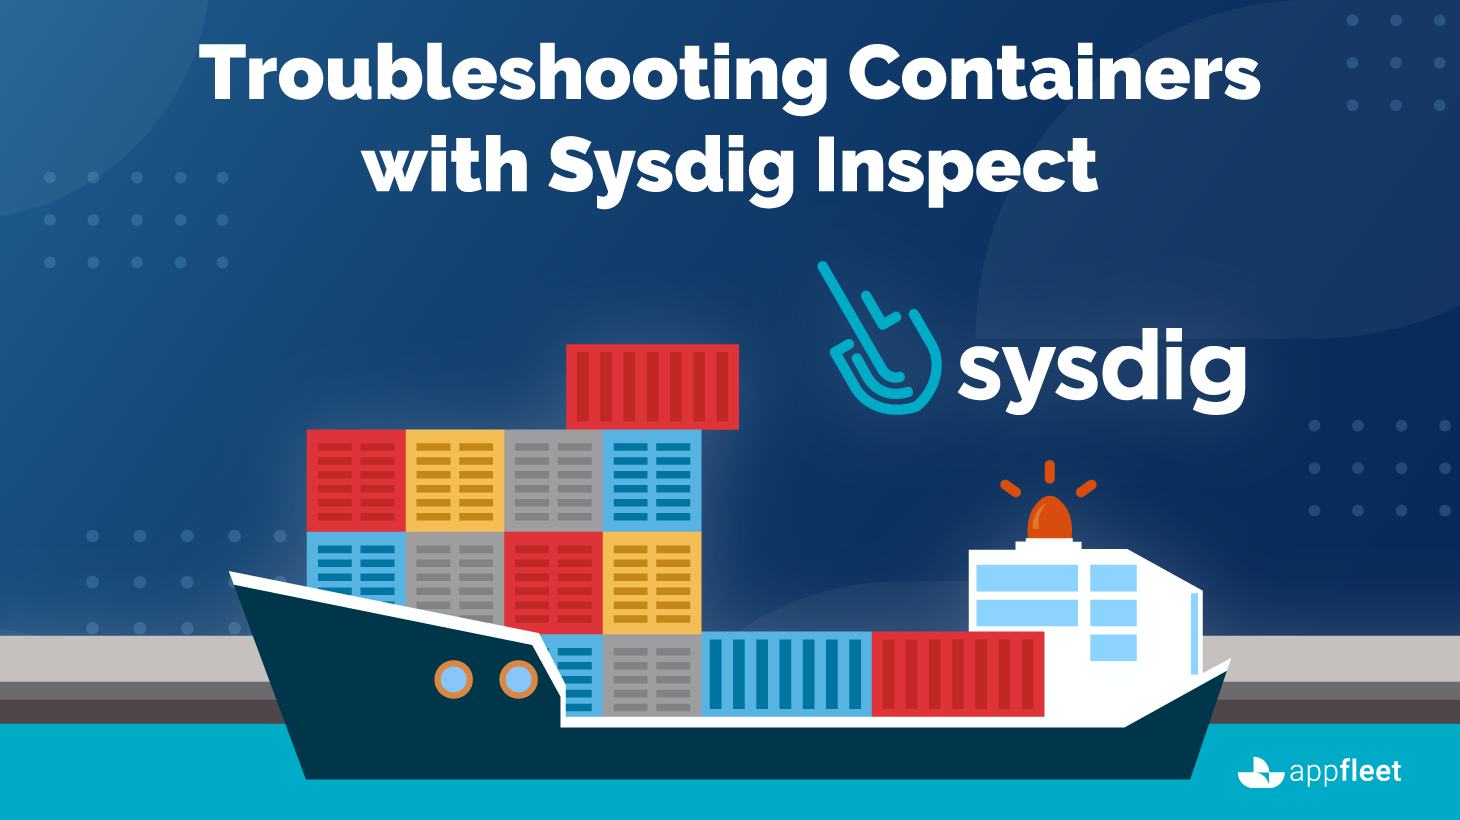 Troubleshooting Containers with Sysdig Inspect